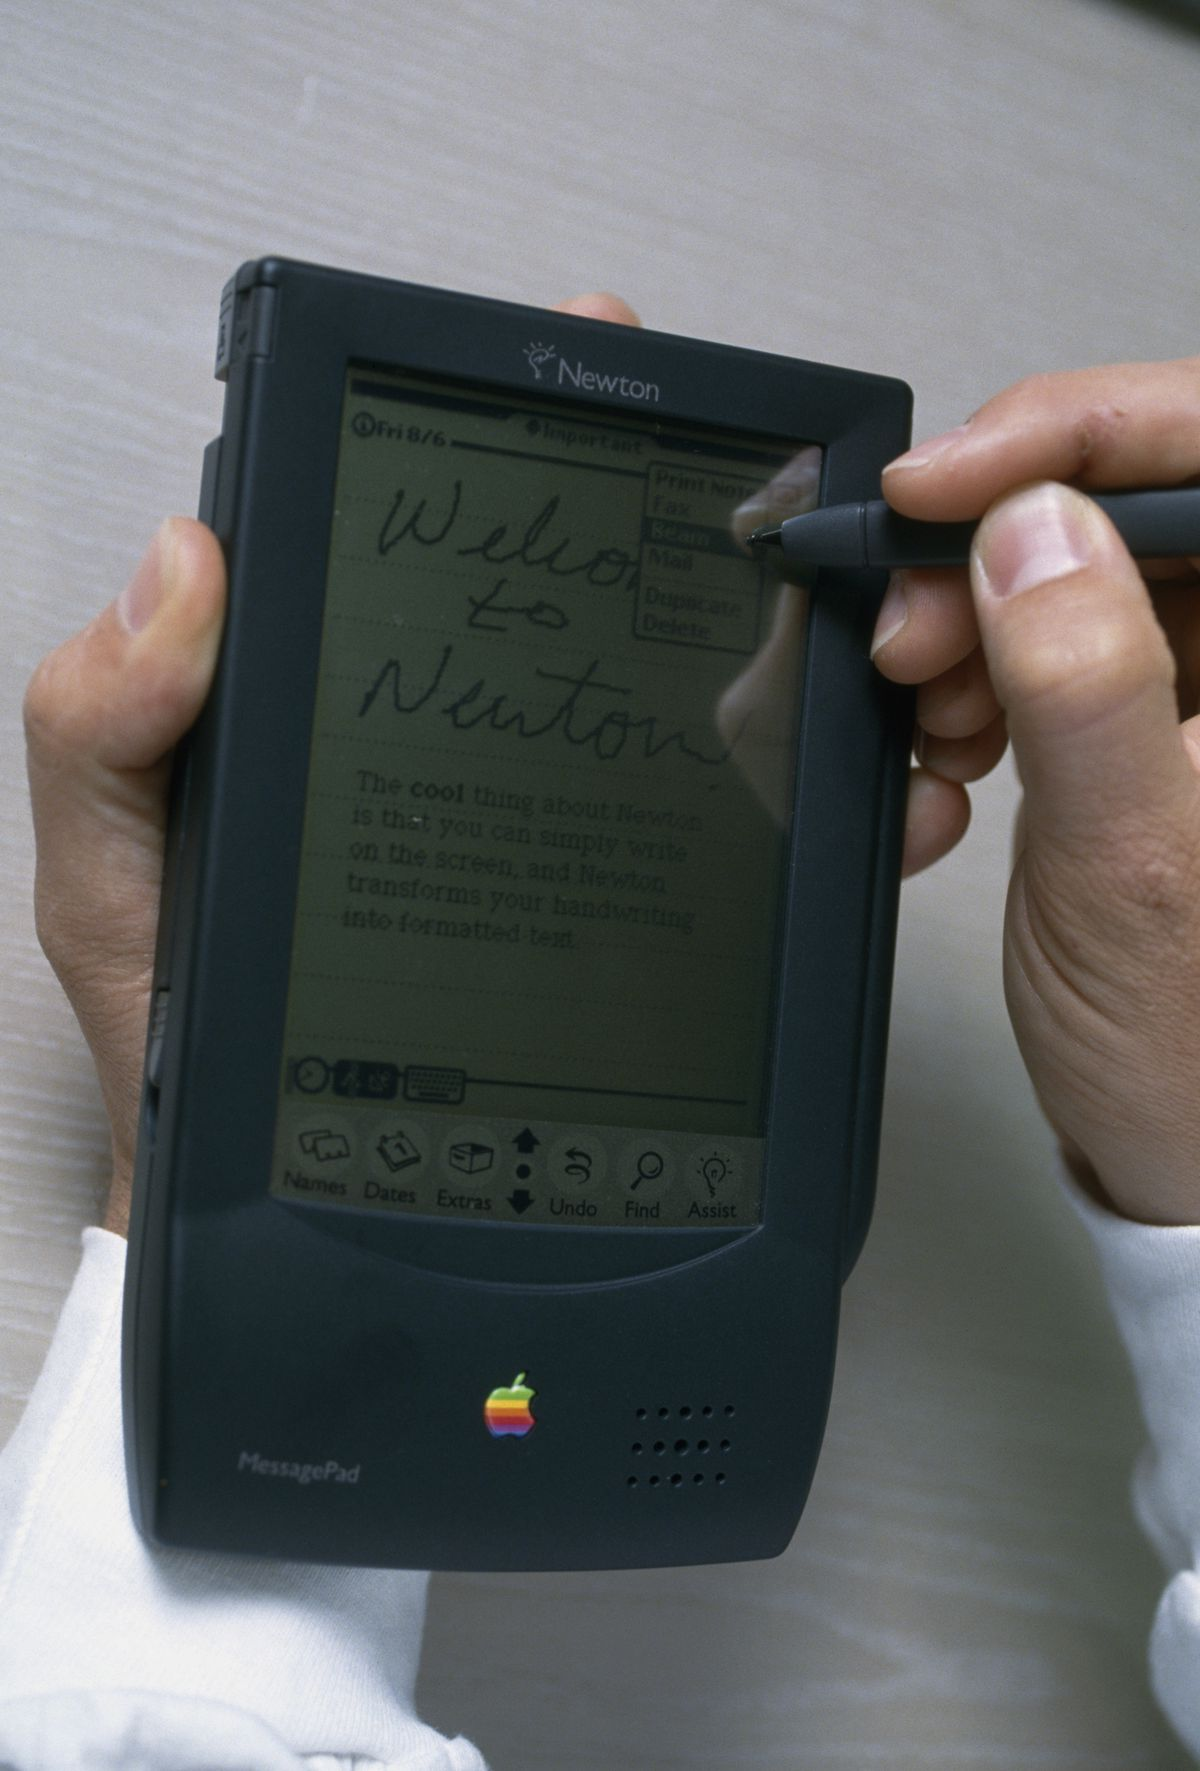 THE NEW PORTABLE COMPUTER FROM APPLE, THE 'NEWTON'